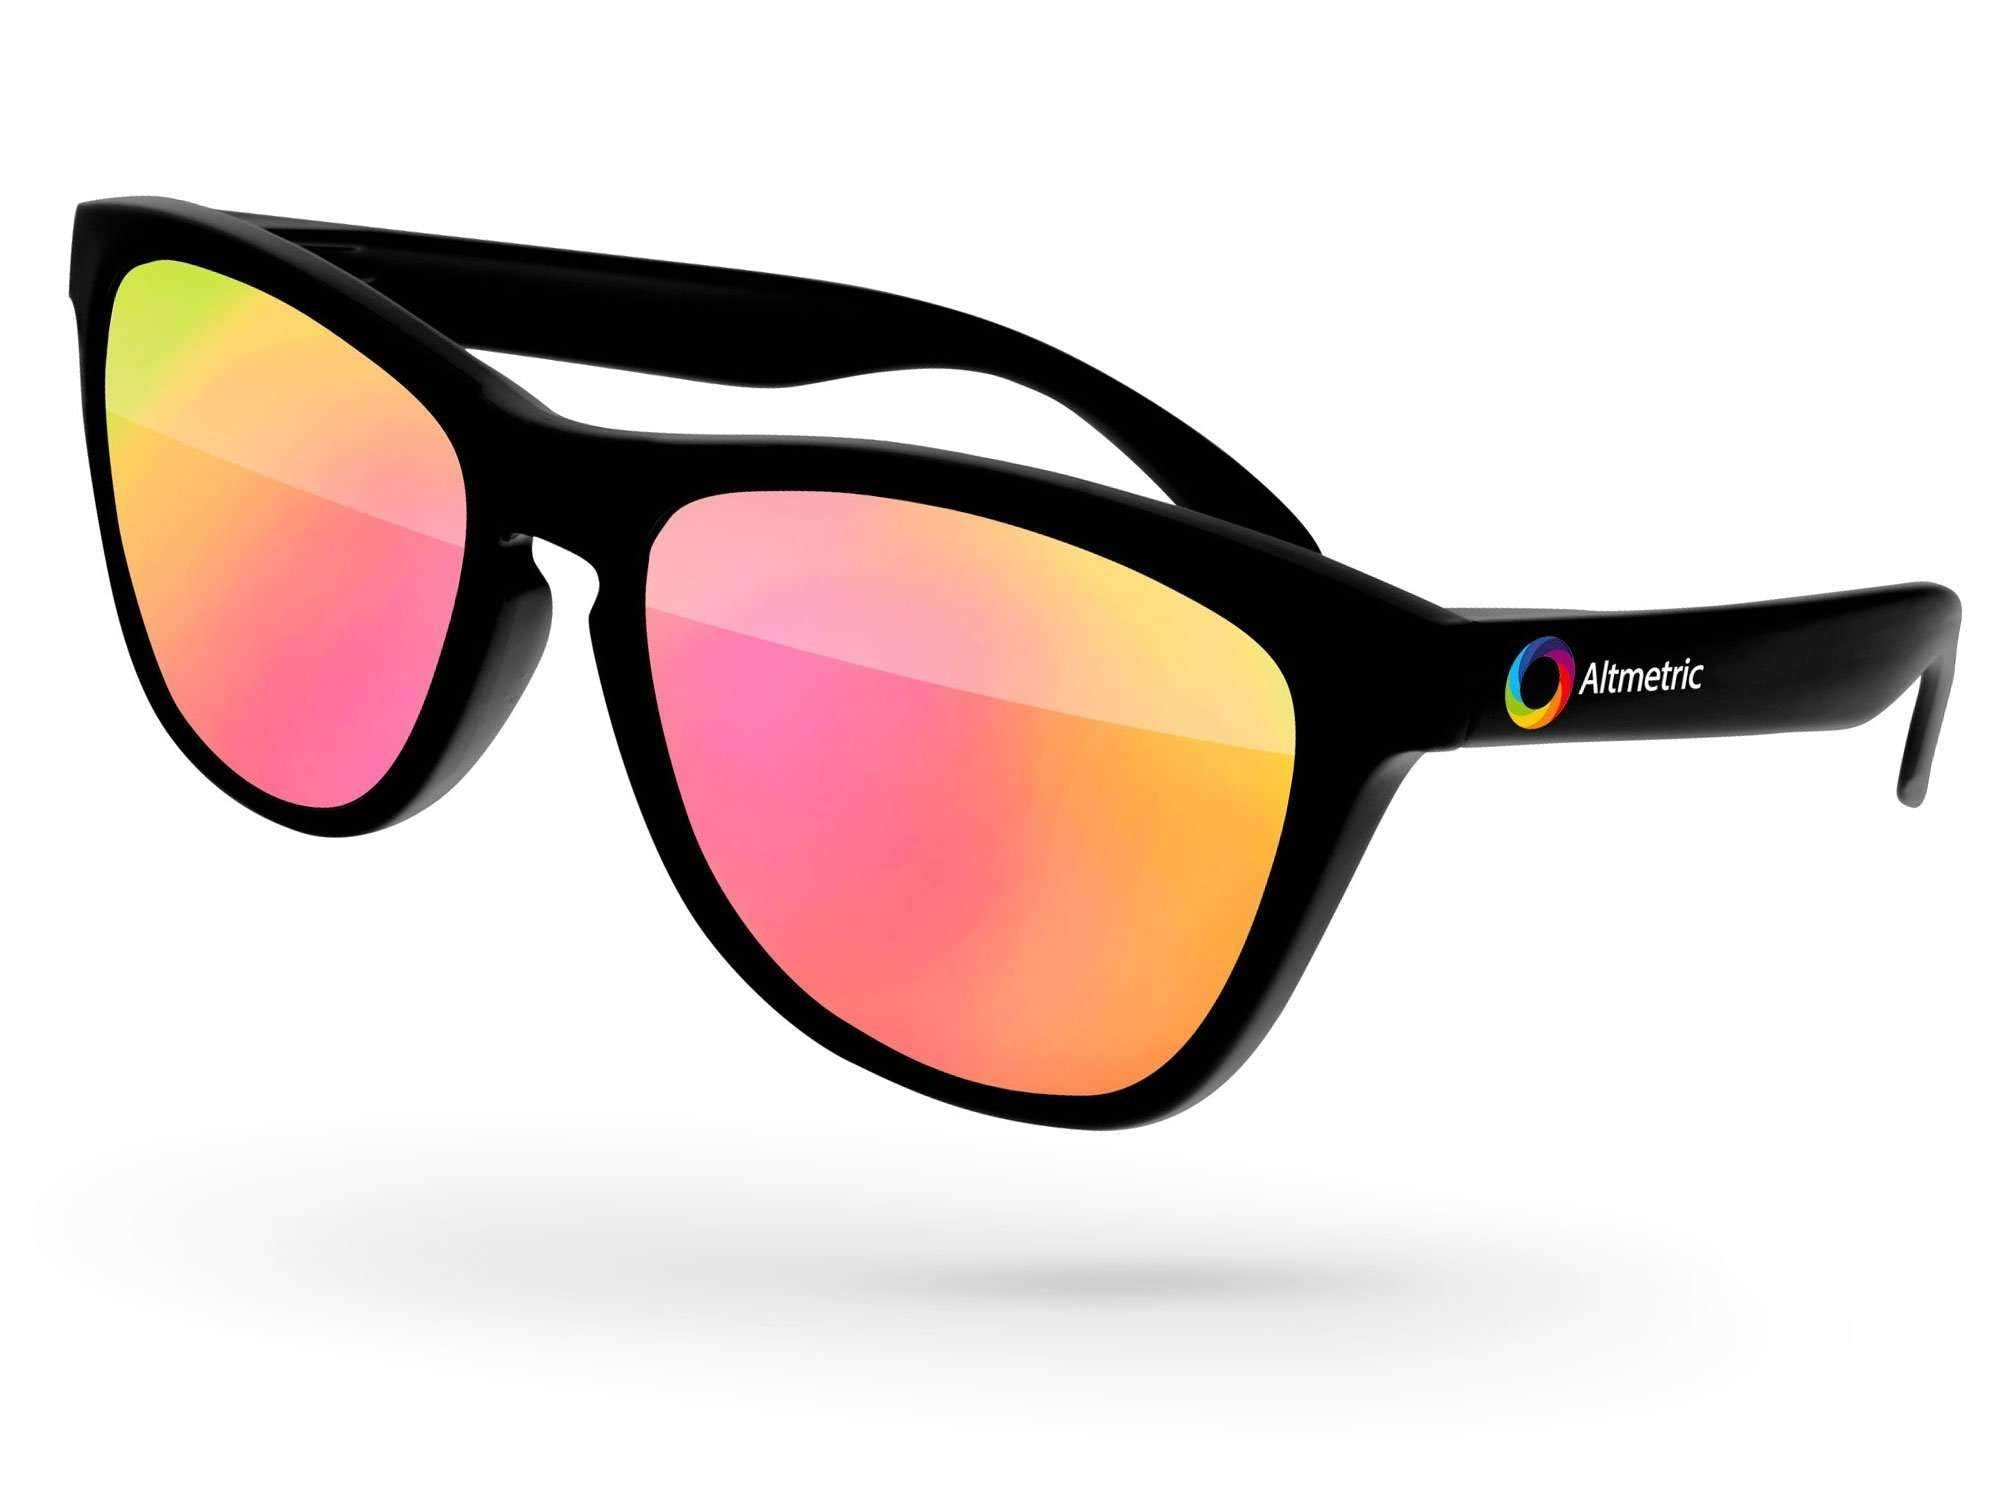 Frog Mirror Promotional Sunglasses w/ full-color temple imprint